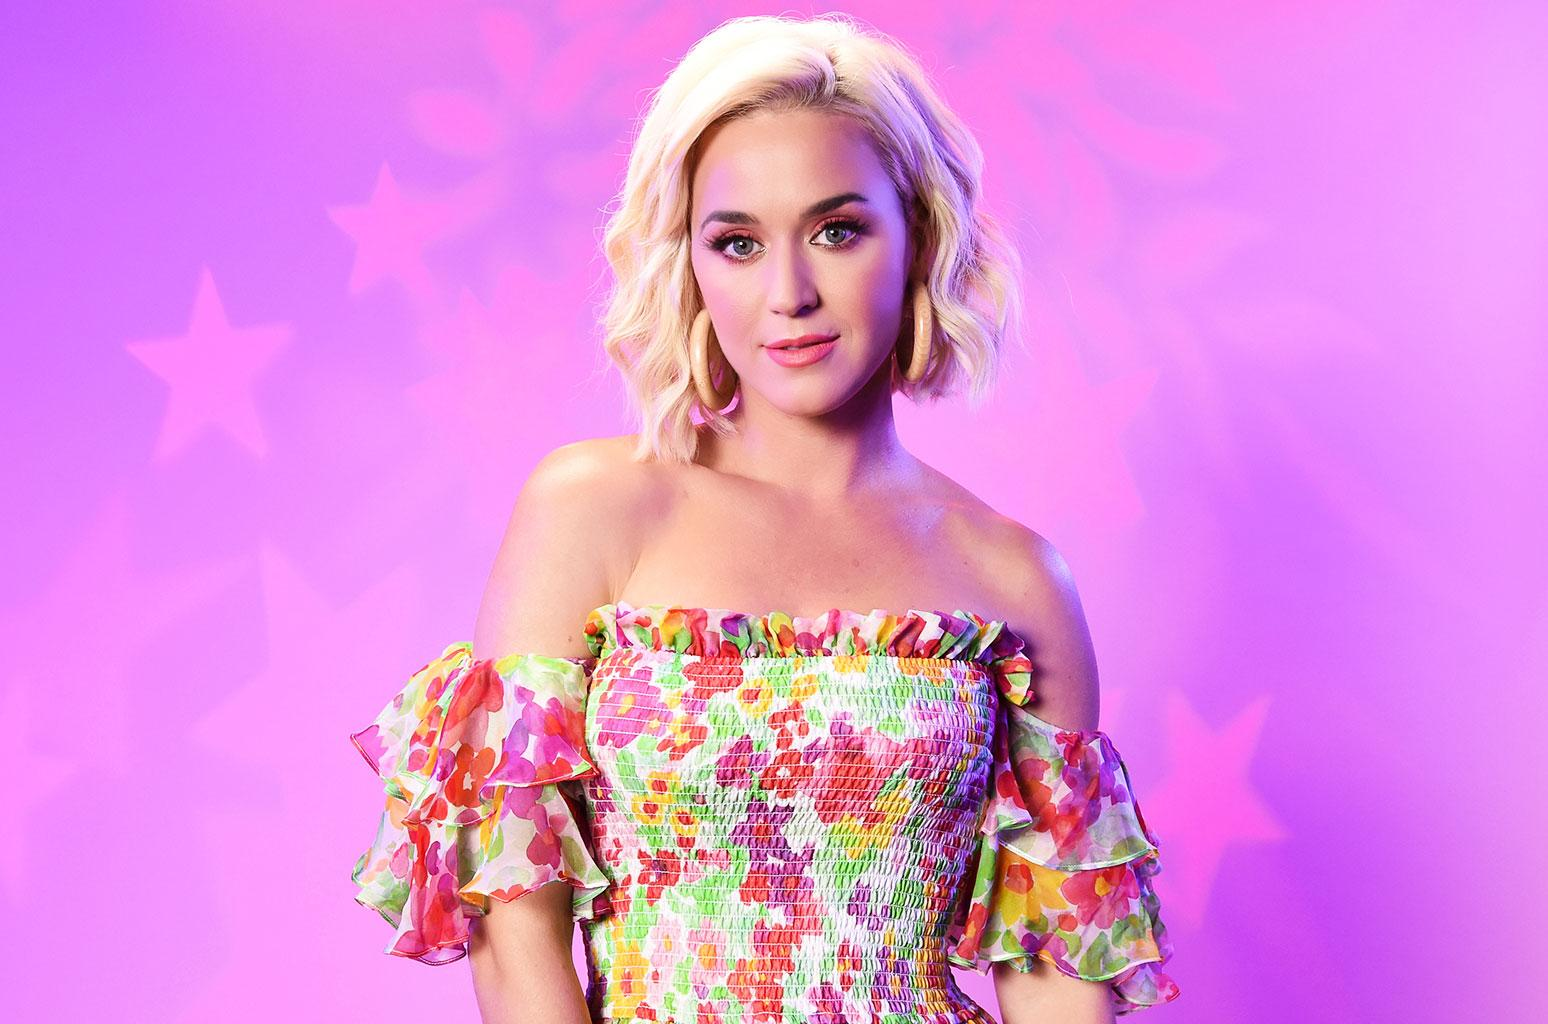 Katy Perry Shares How She Deals With Hate And Negativity As An Artist!